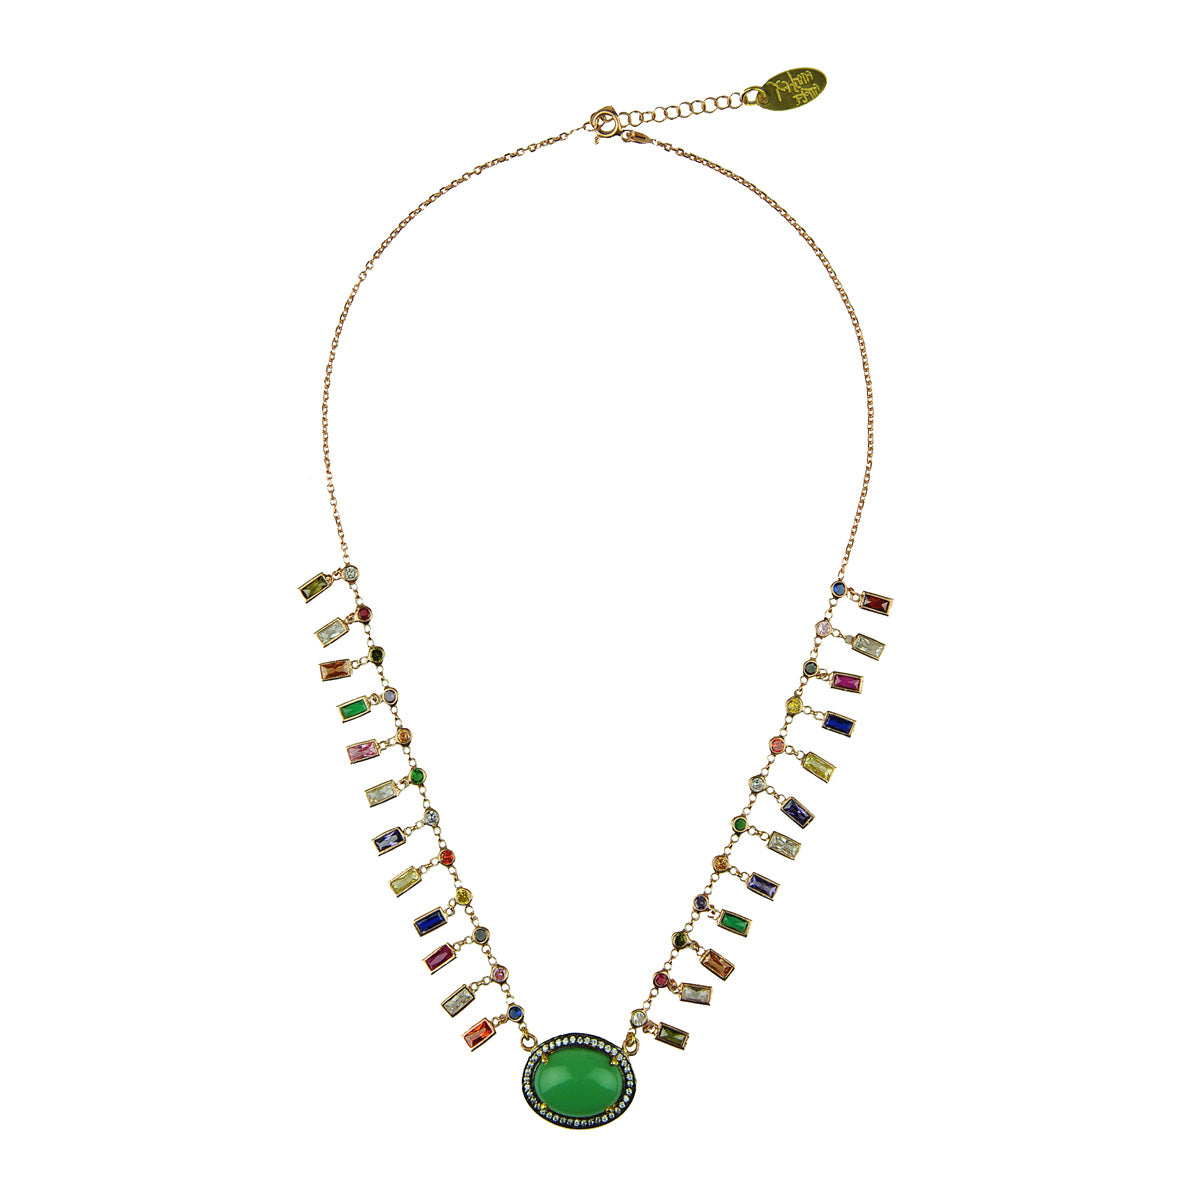 Katerina psoma Short Chrysoprase and Crystal Chain Necklace